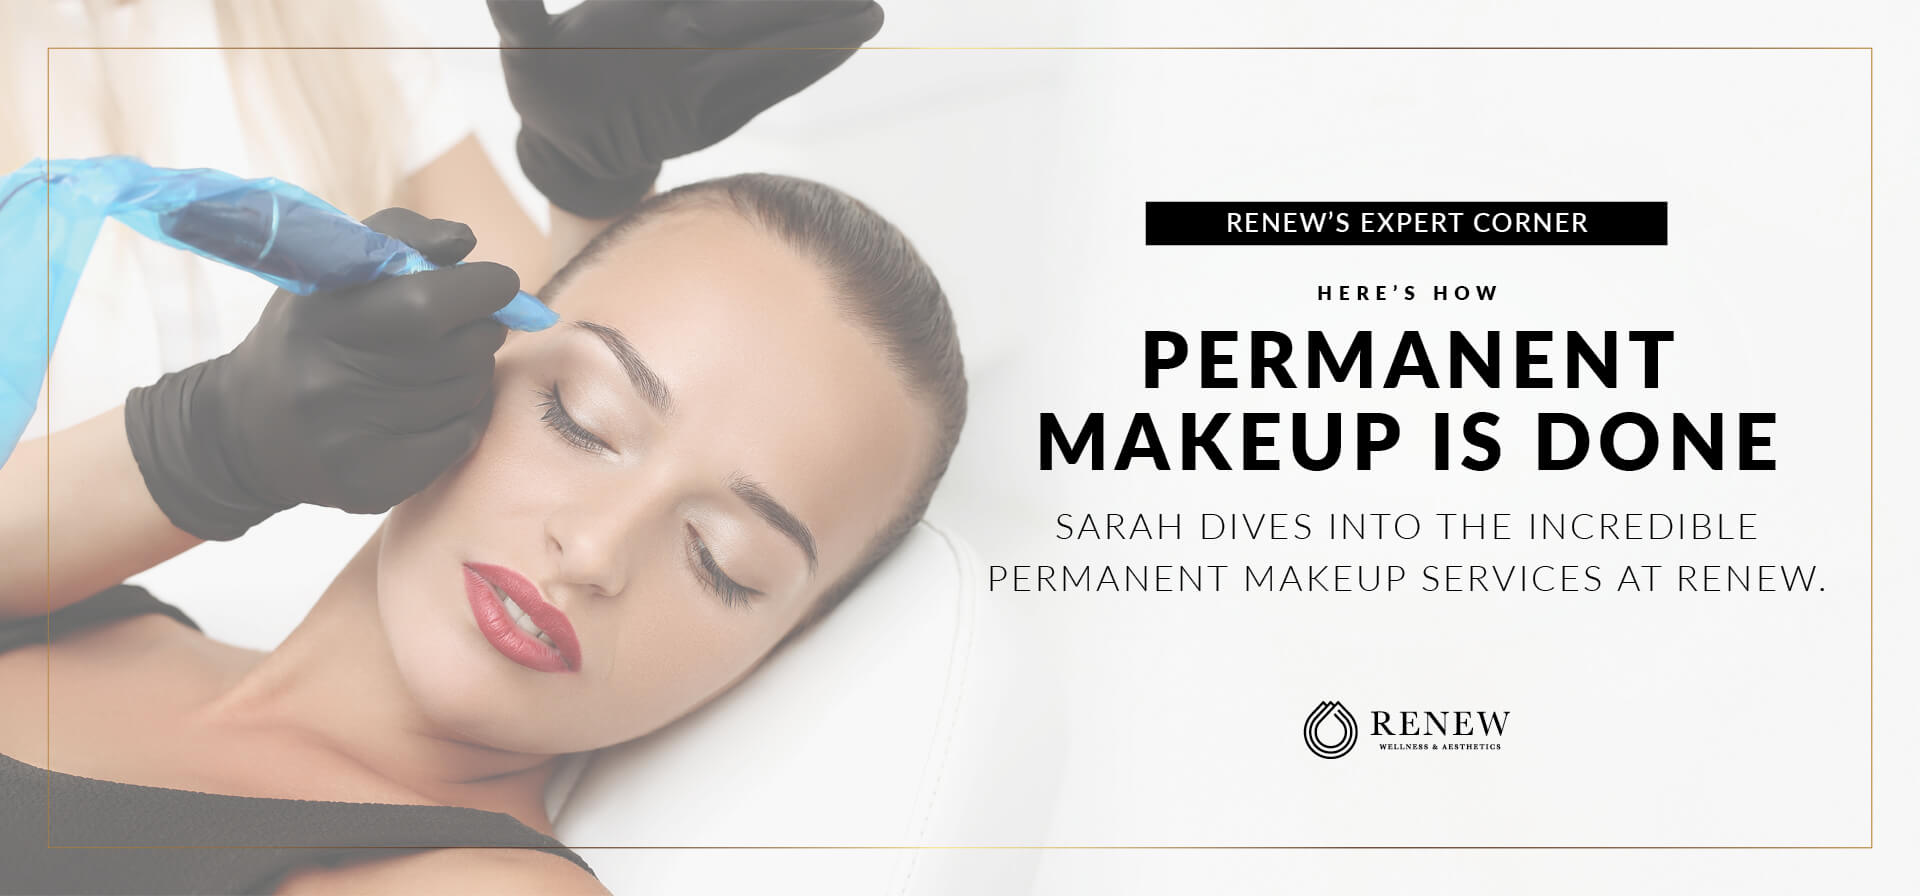 Here's How Permanent Makeup Is Done